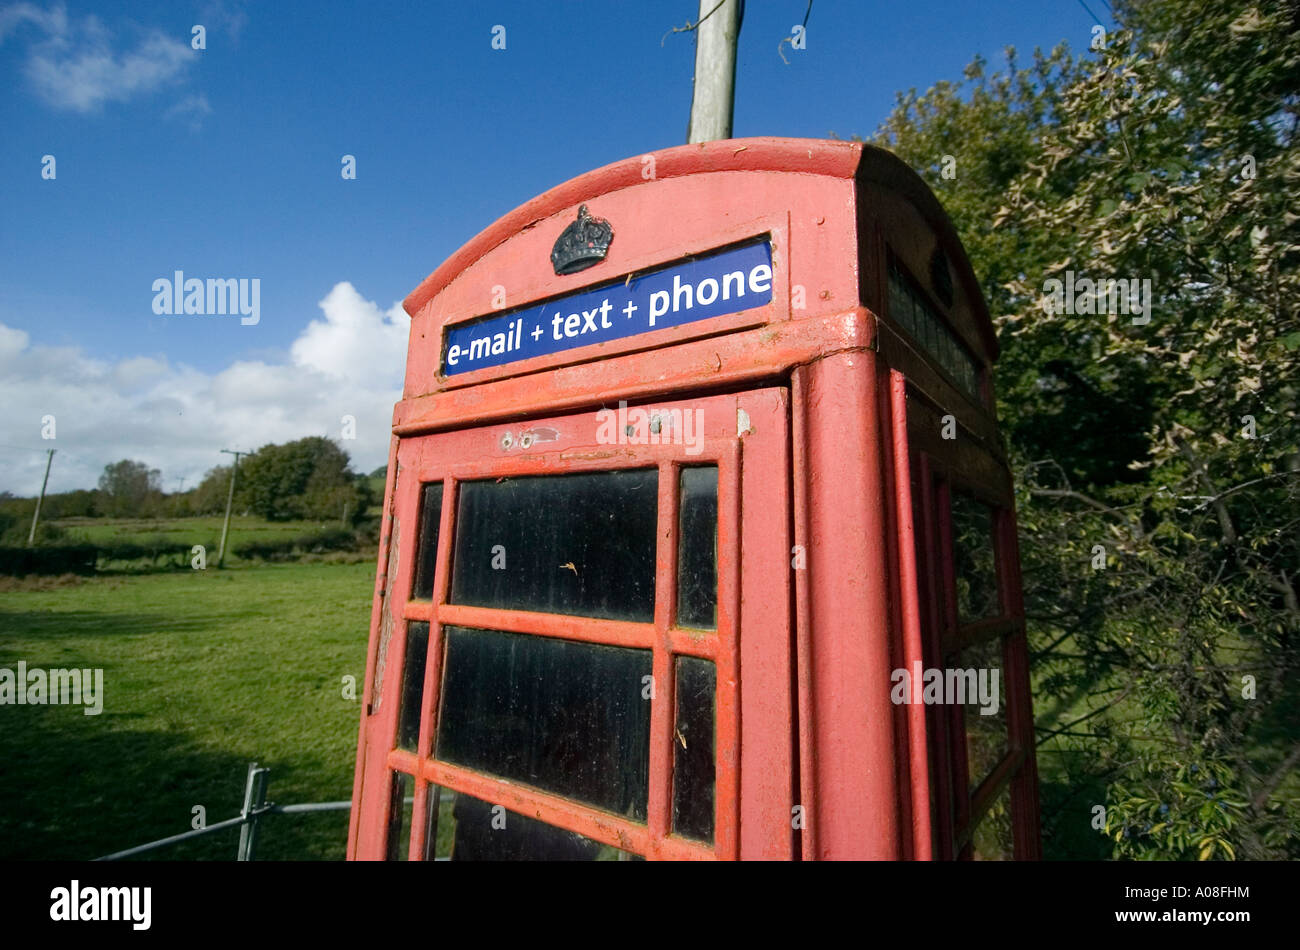 Old style BT phonebox with email and text facilities. - Stock Image